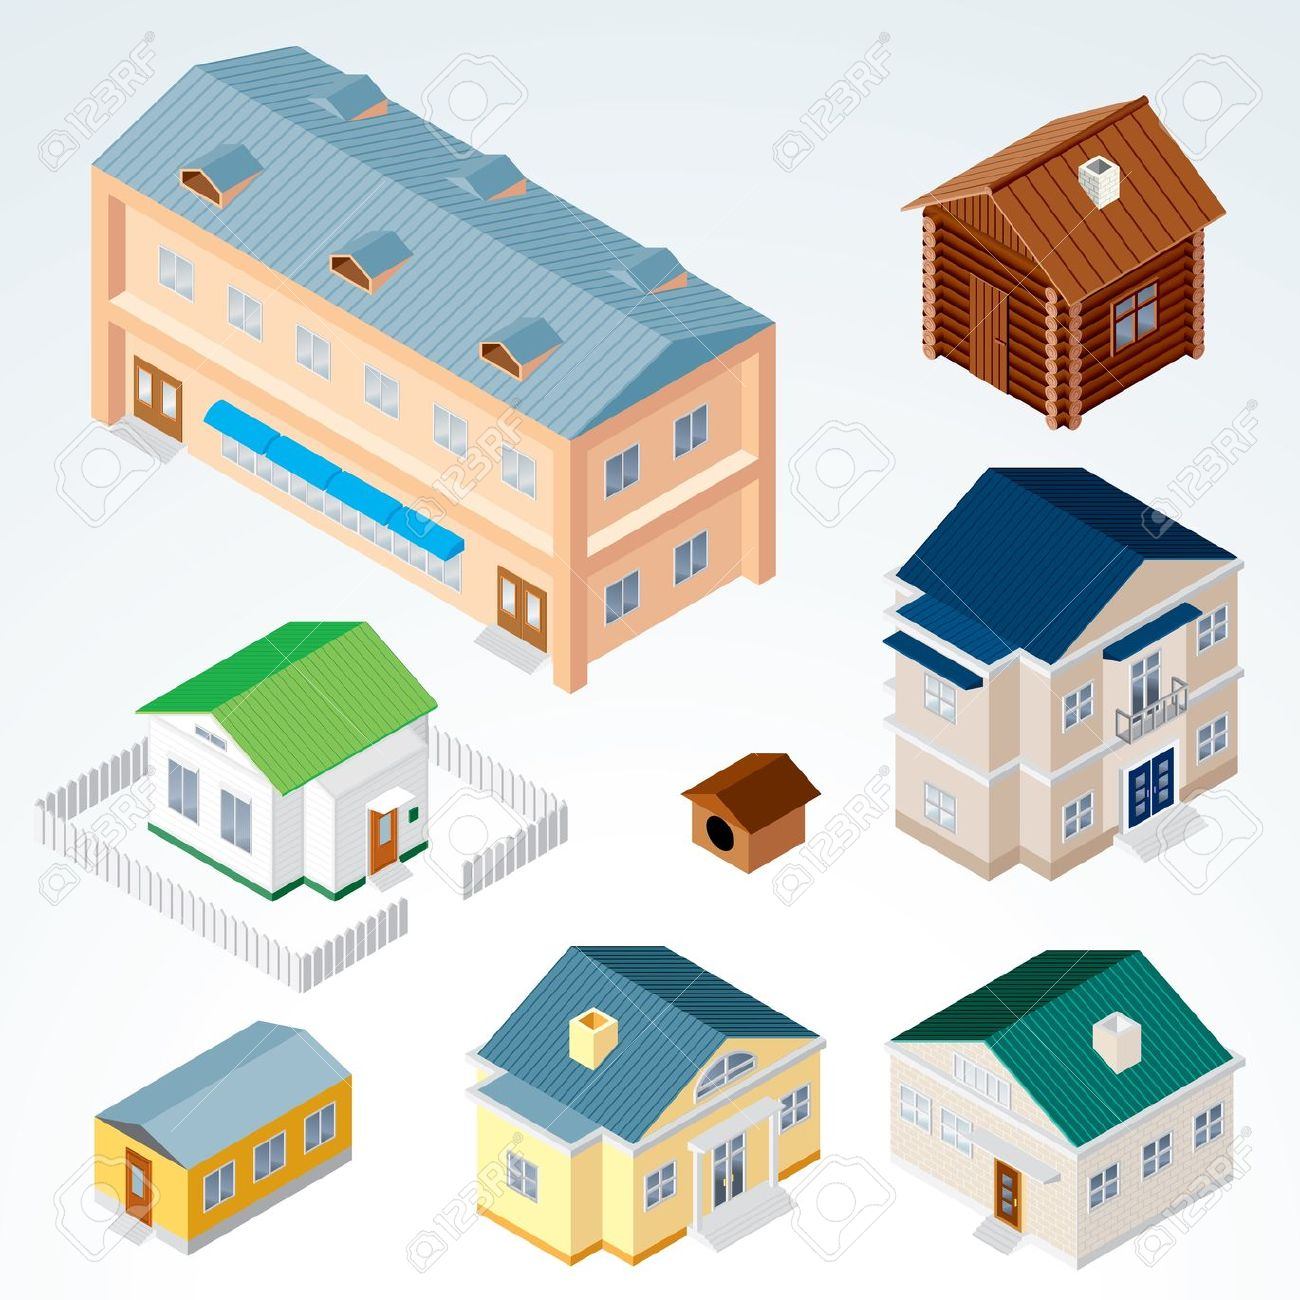 Set Of Isolated Isometric Buildings, Illustration Of Various.